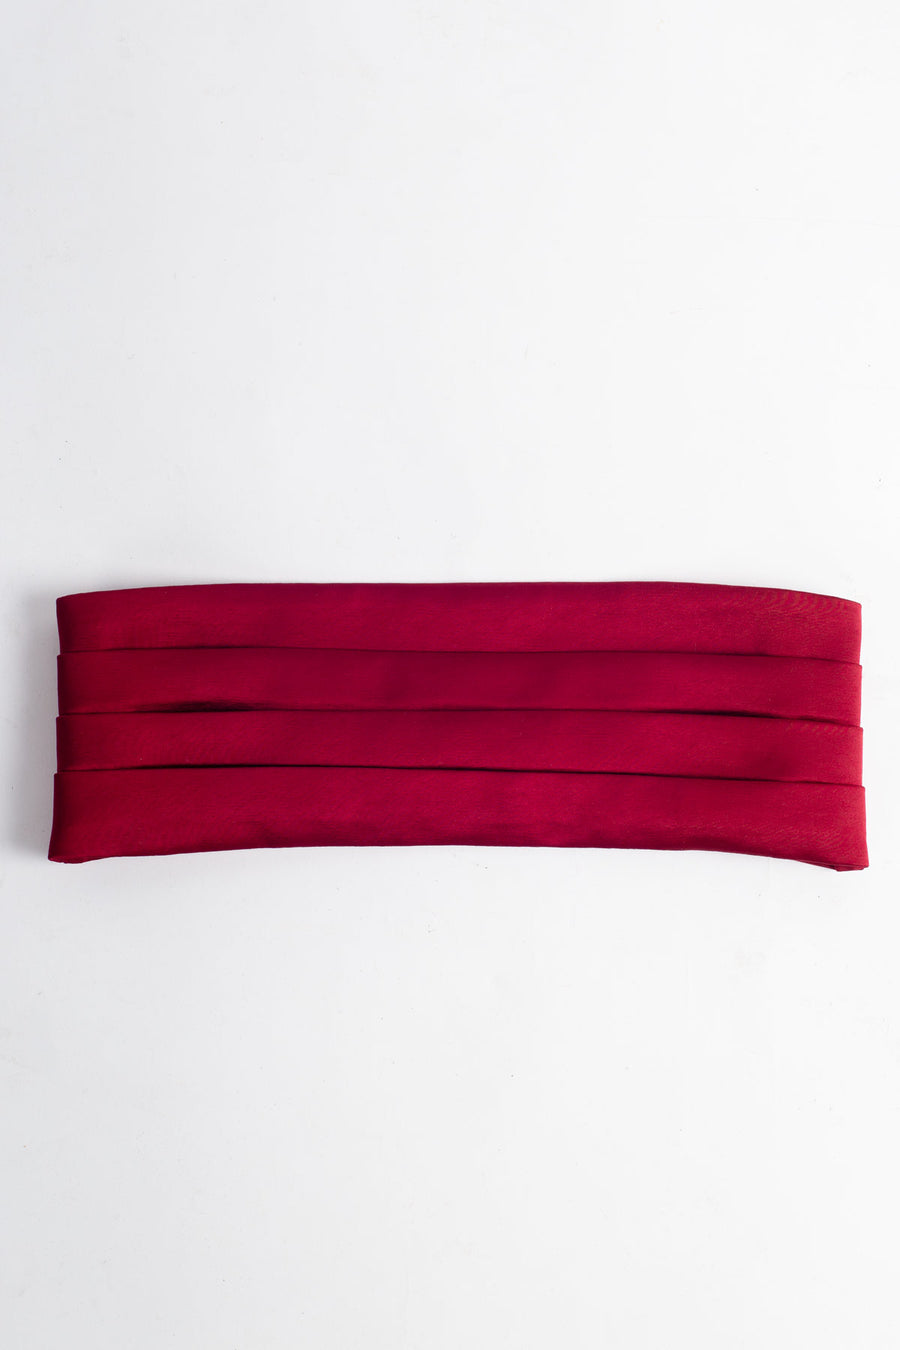 FRAK Viscose Waist Belt - Burgundy